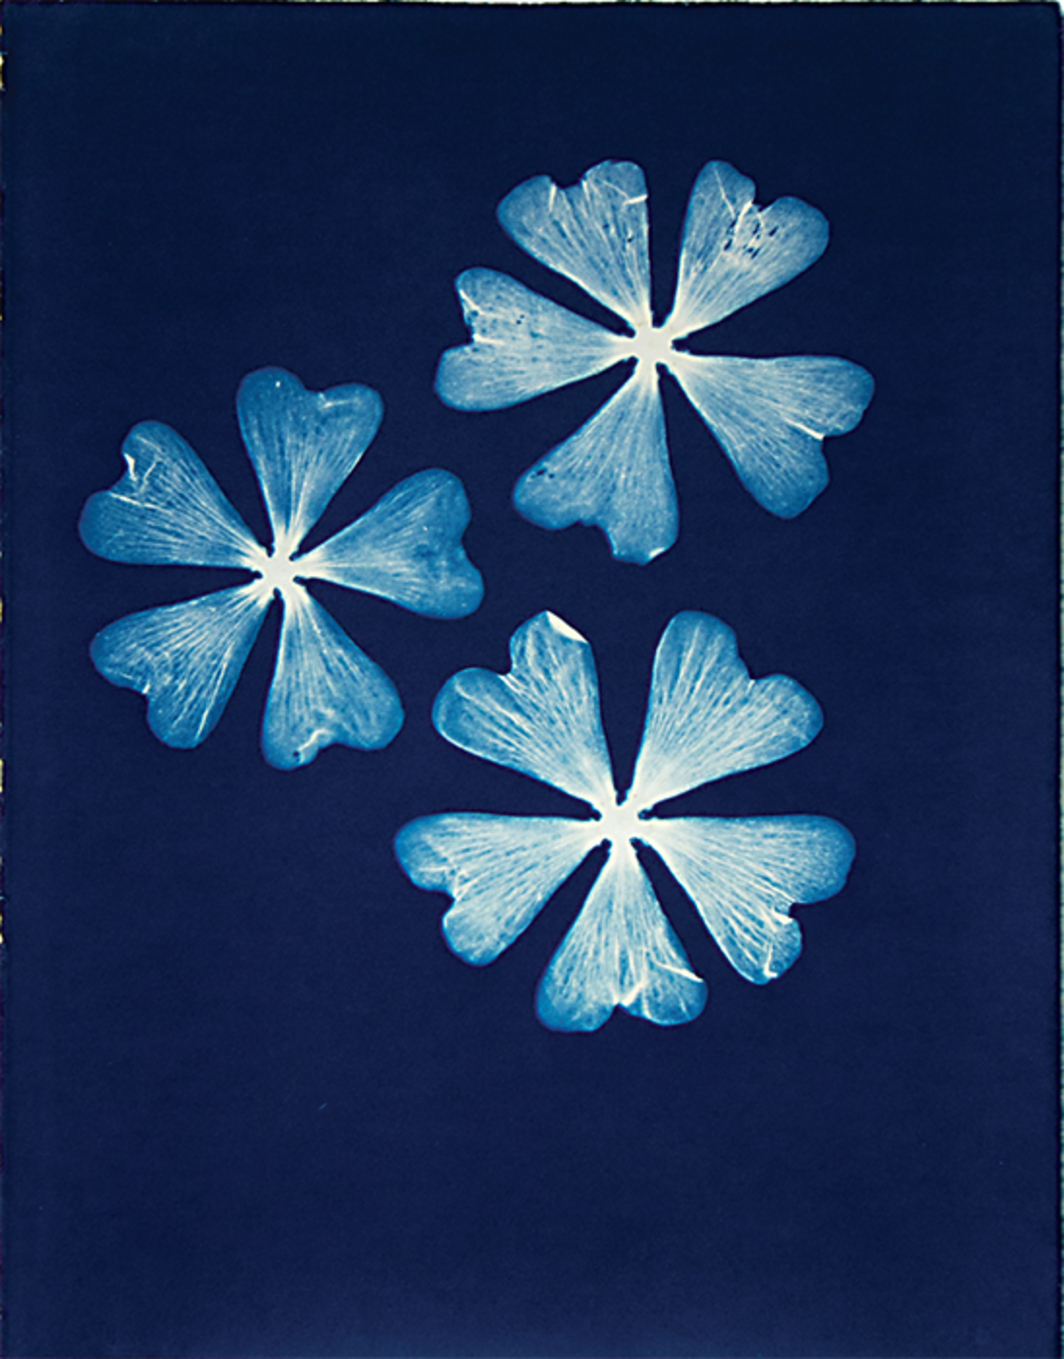 "Pipo Nguyen-duy, Untitled F40, 1998, cyanotype, 15 × 11 1/2""."